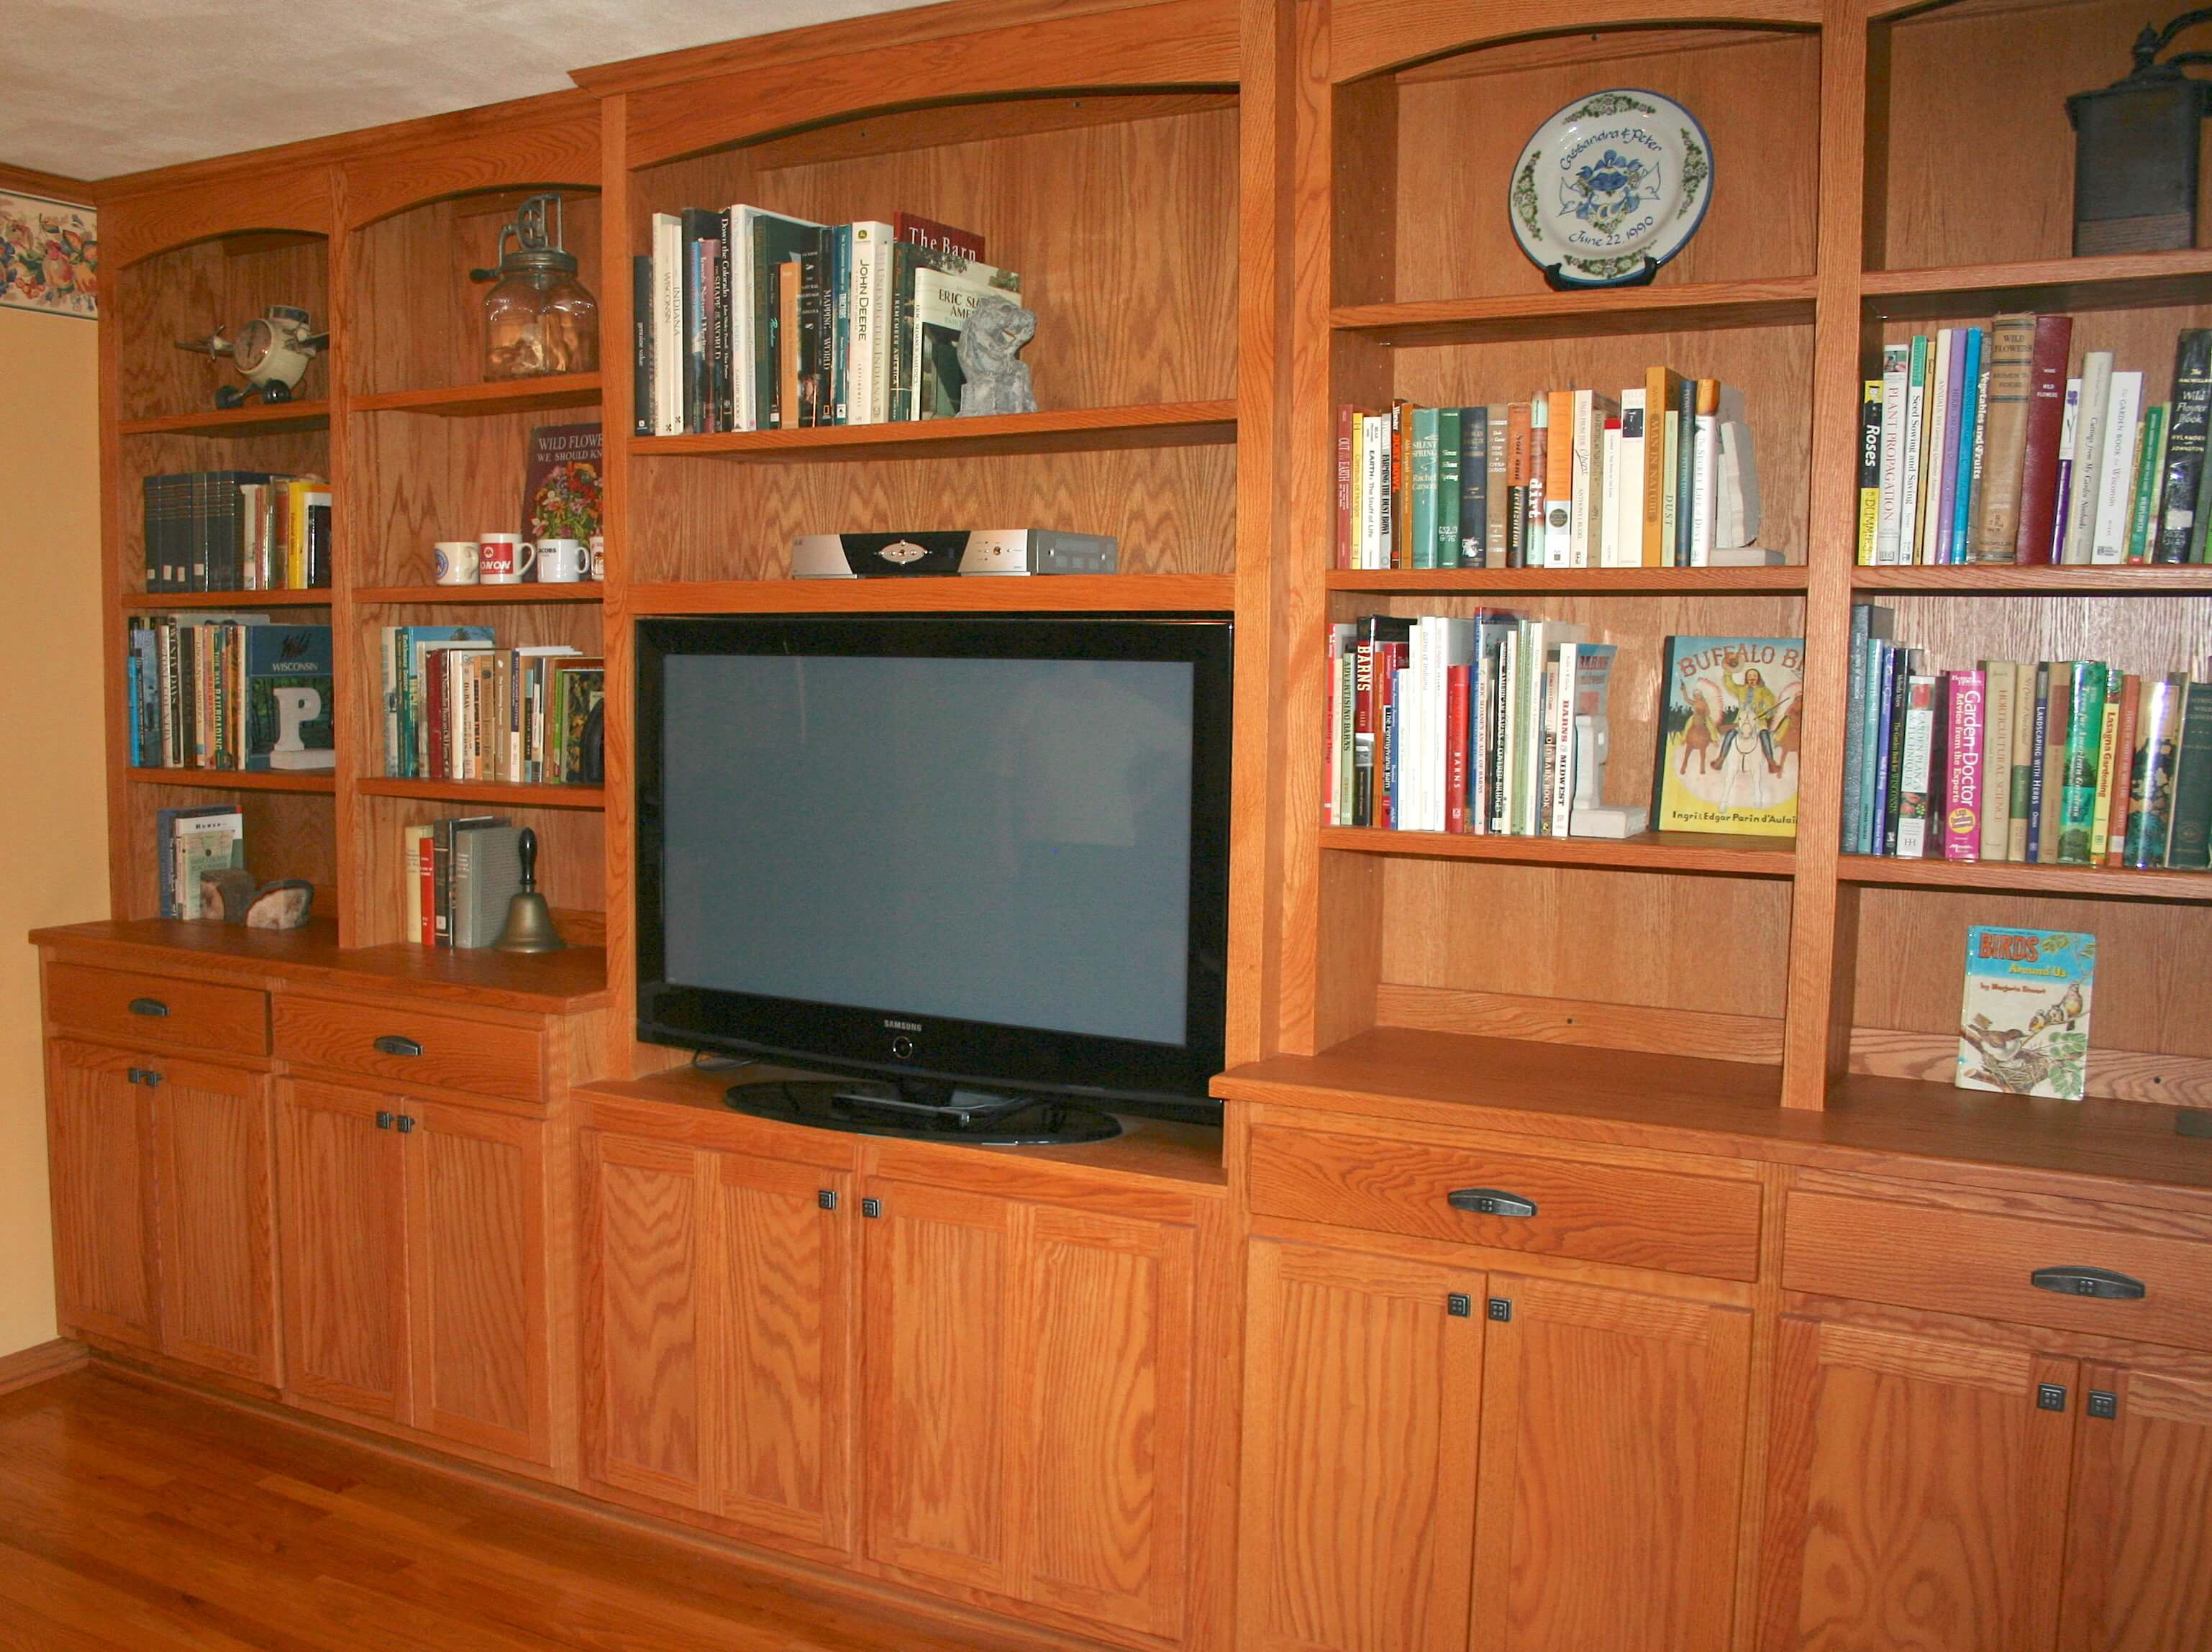 living room cabinet with bookshelf and TV